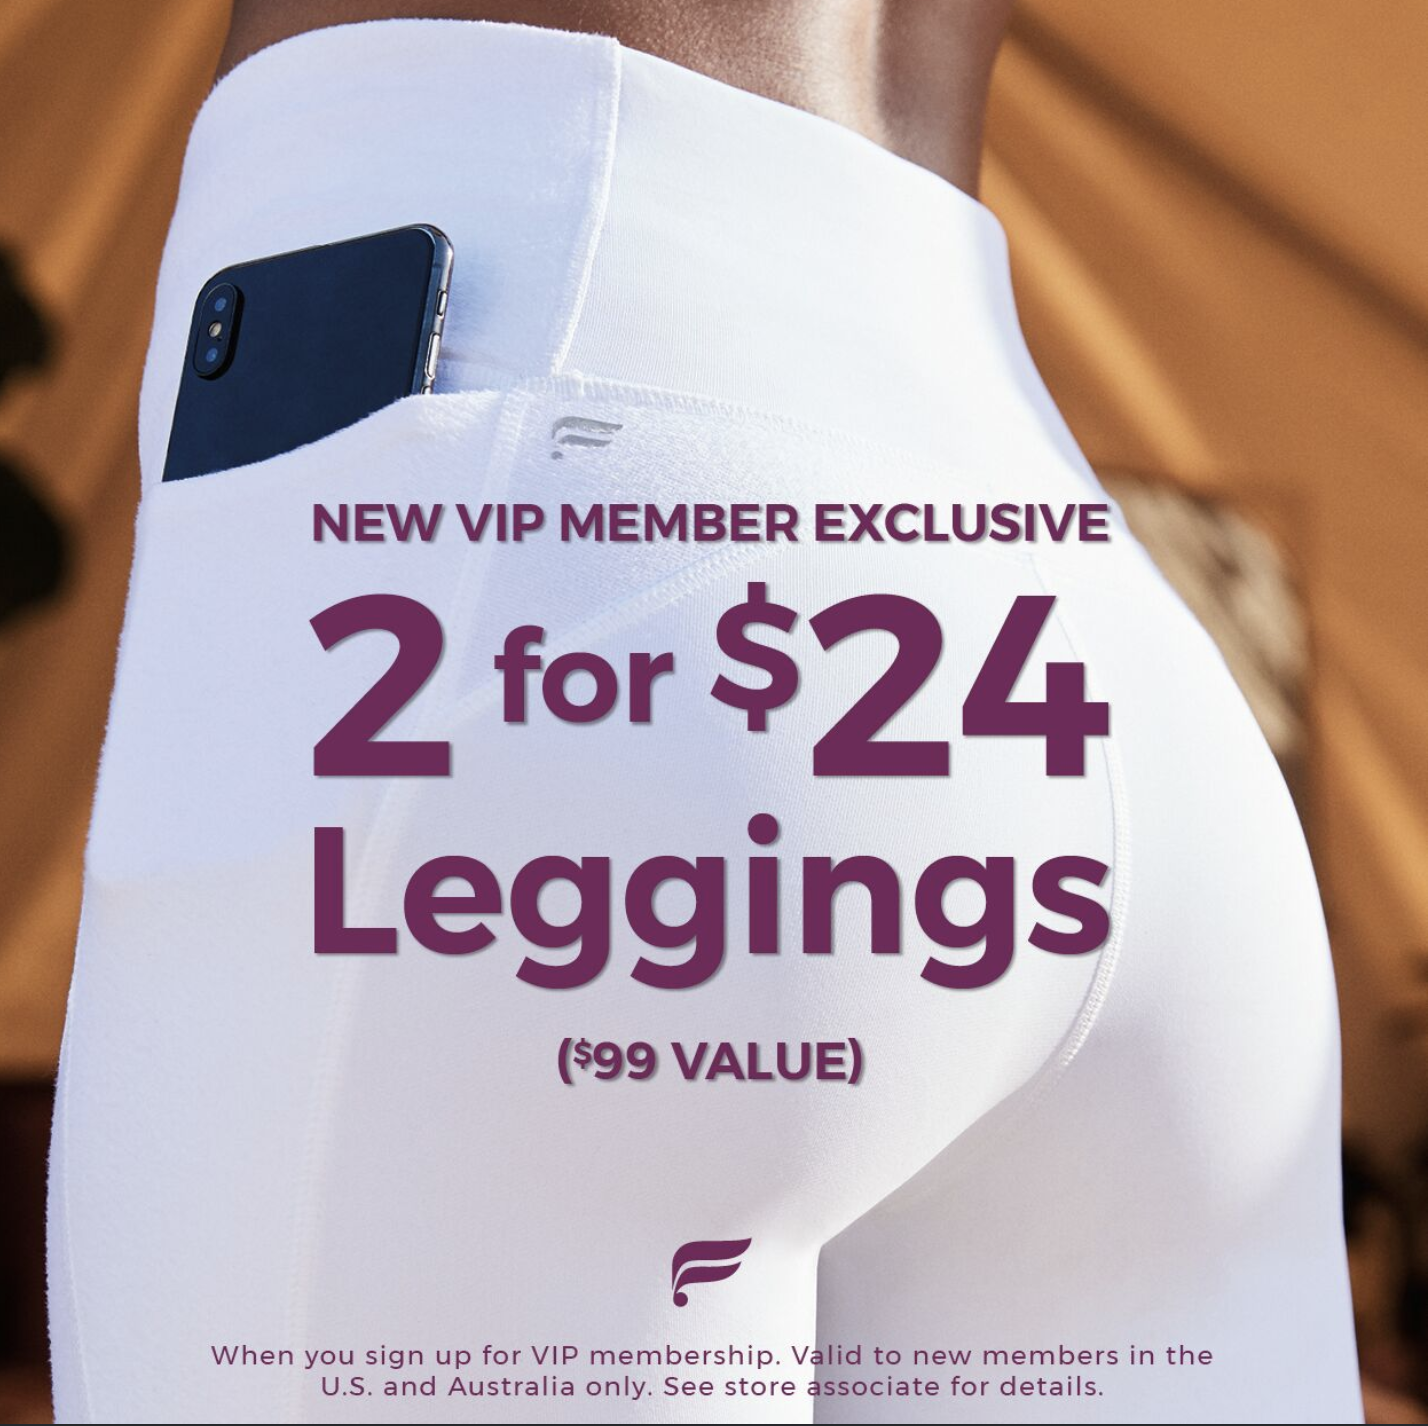 2 for $24 Leggings from Fabletics